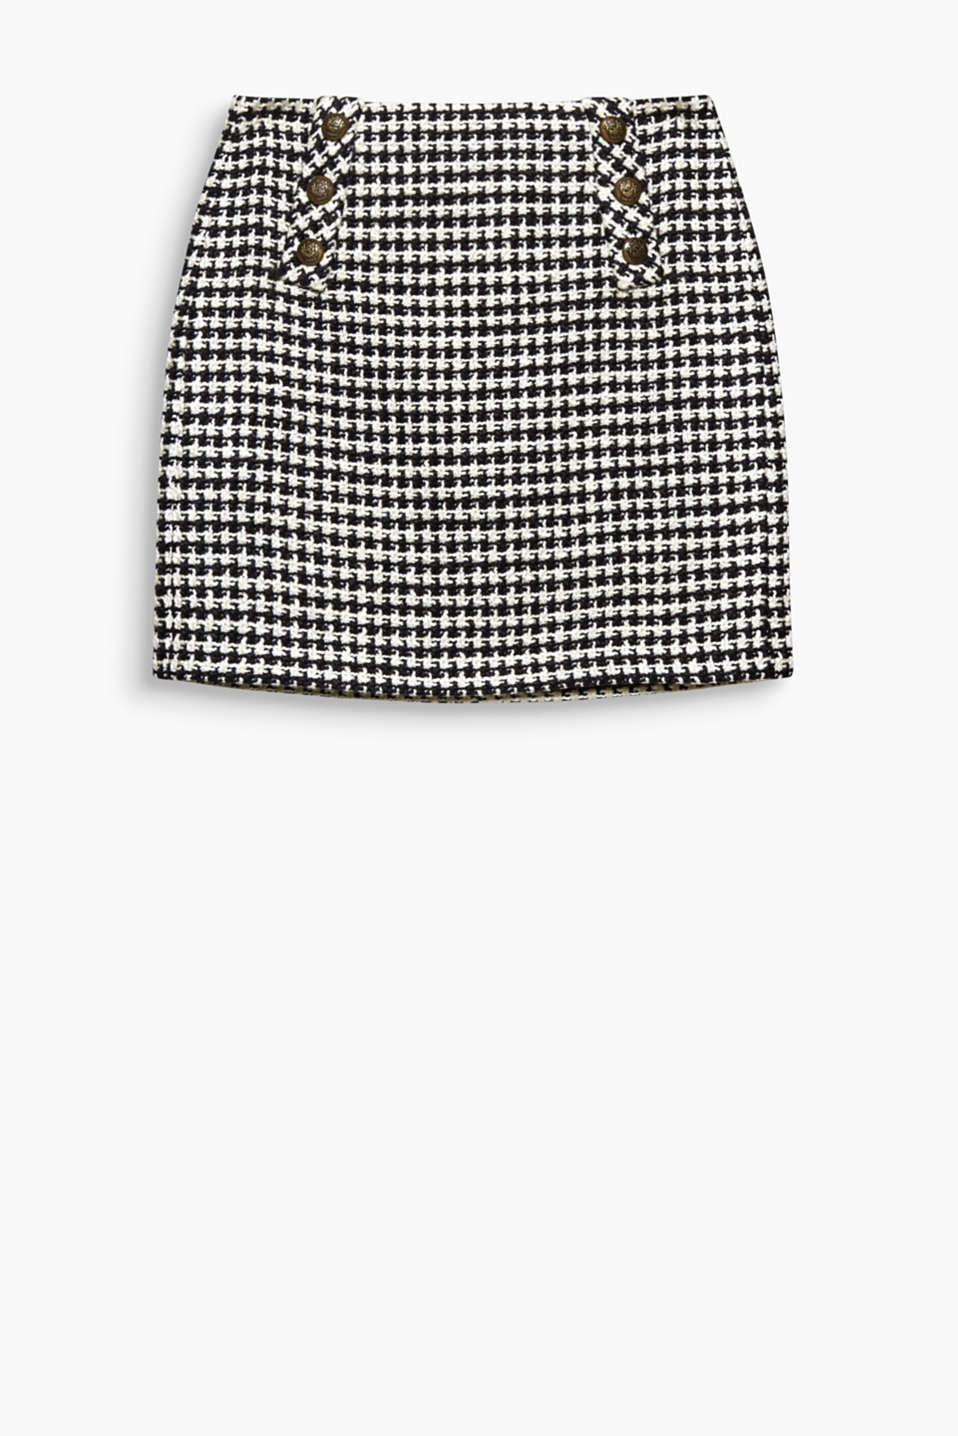 This mini skirt with a houndstooth pattern and crested buttons is defined by its innovative military flair!